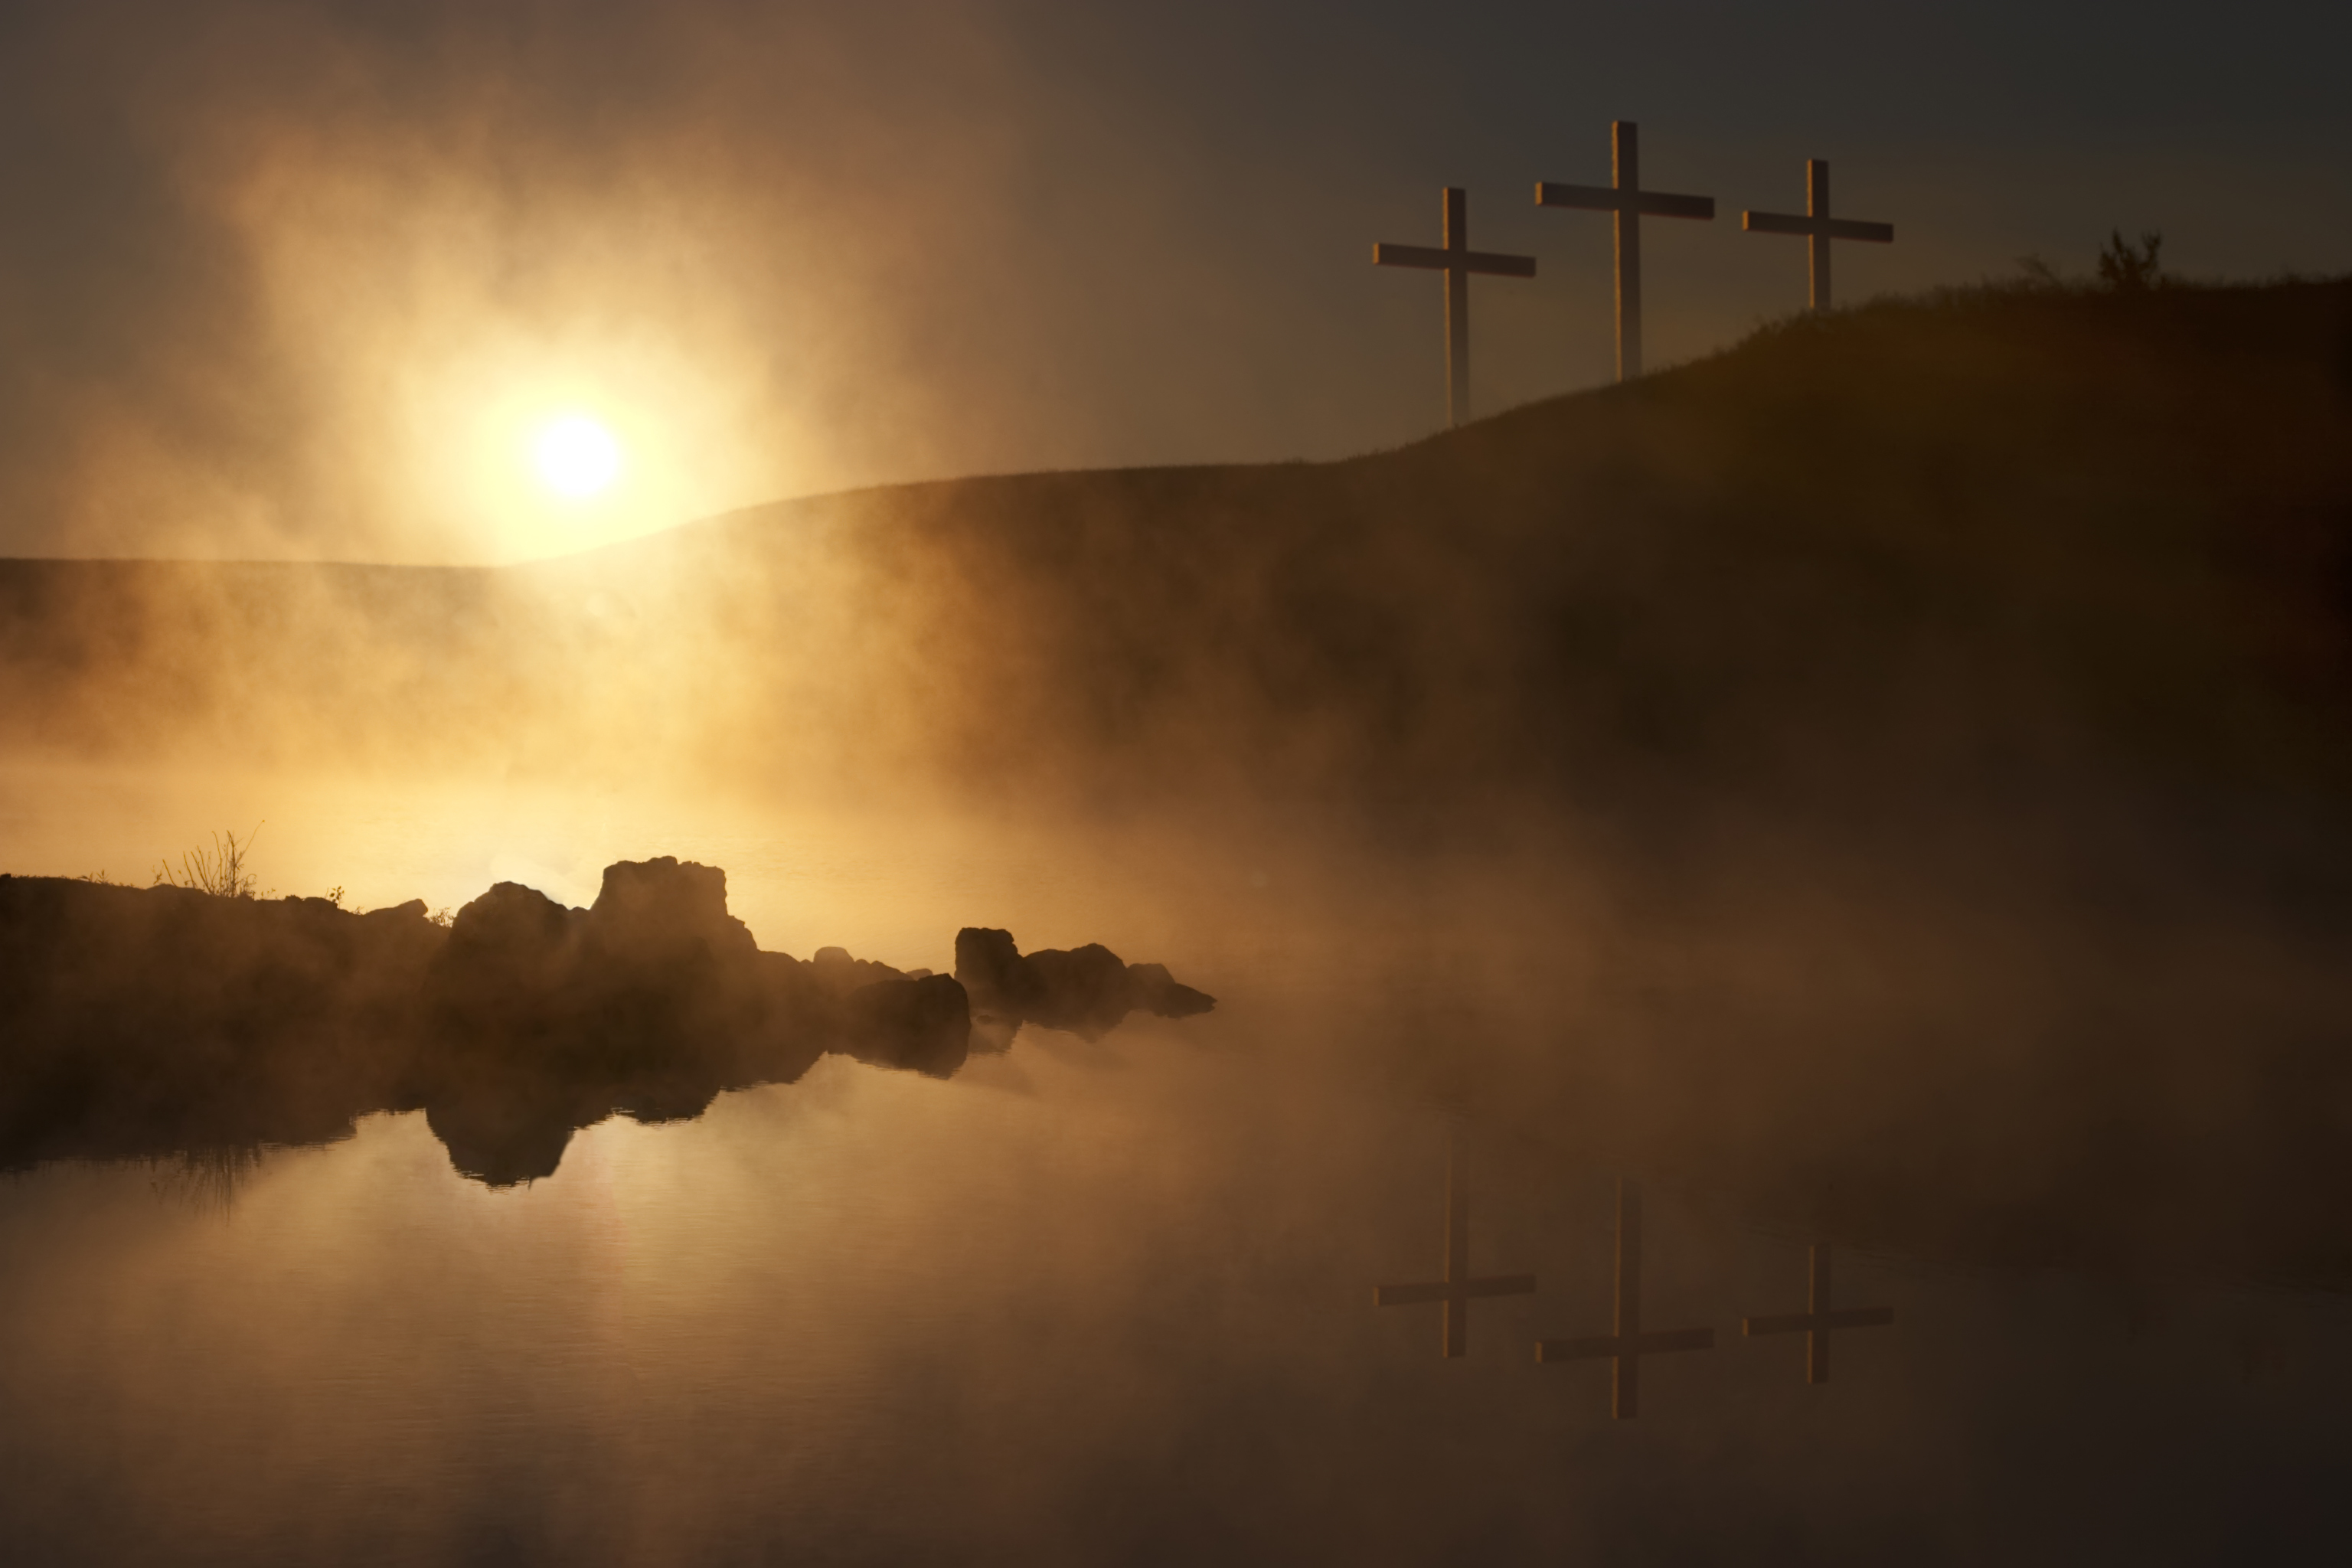 10 good friday quotes to help commemorate the crucifixion and